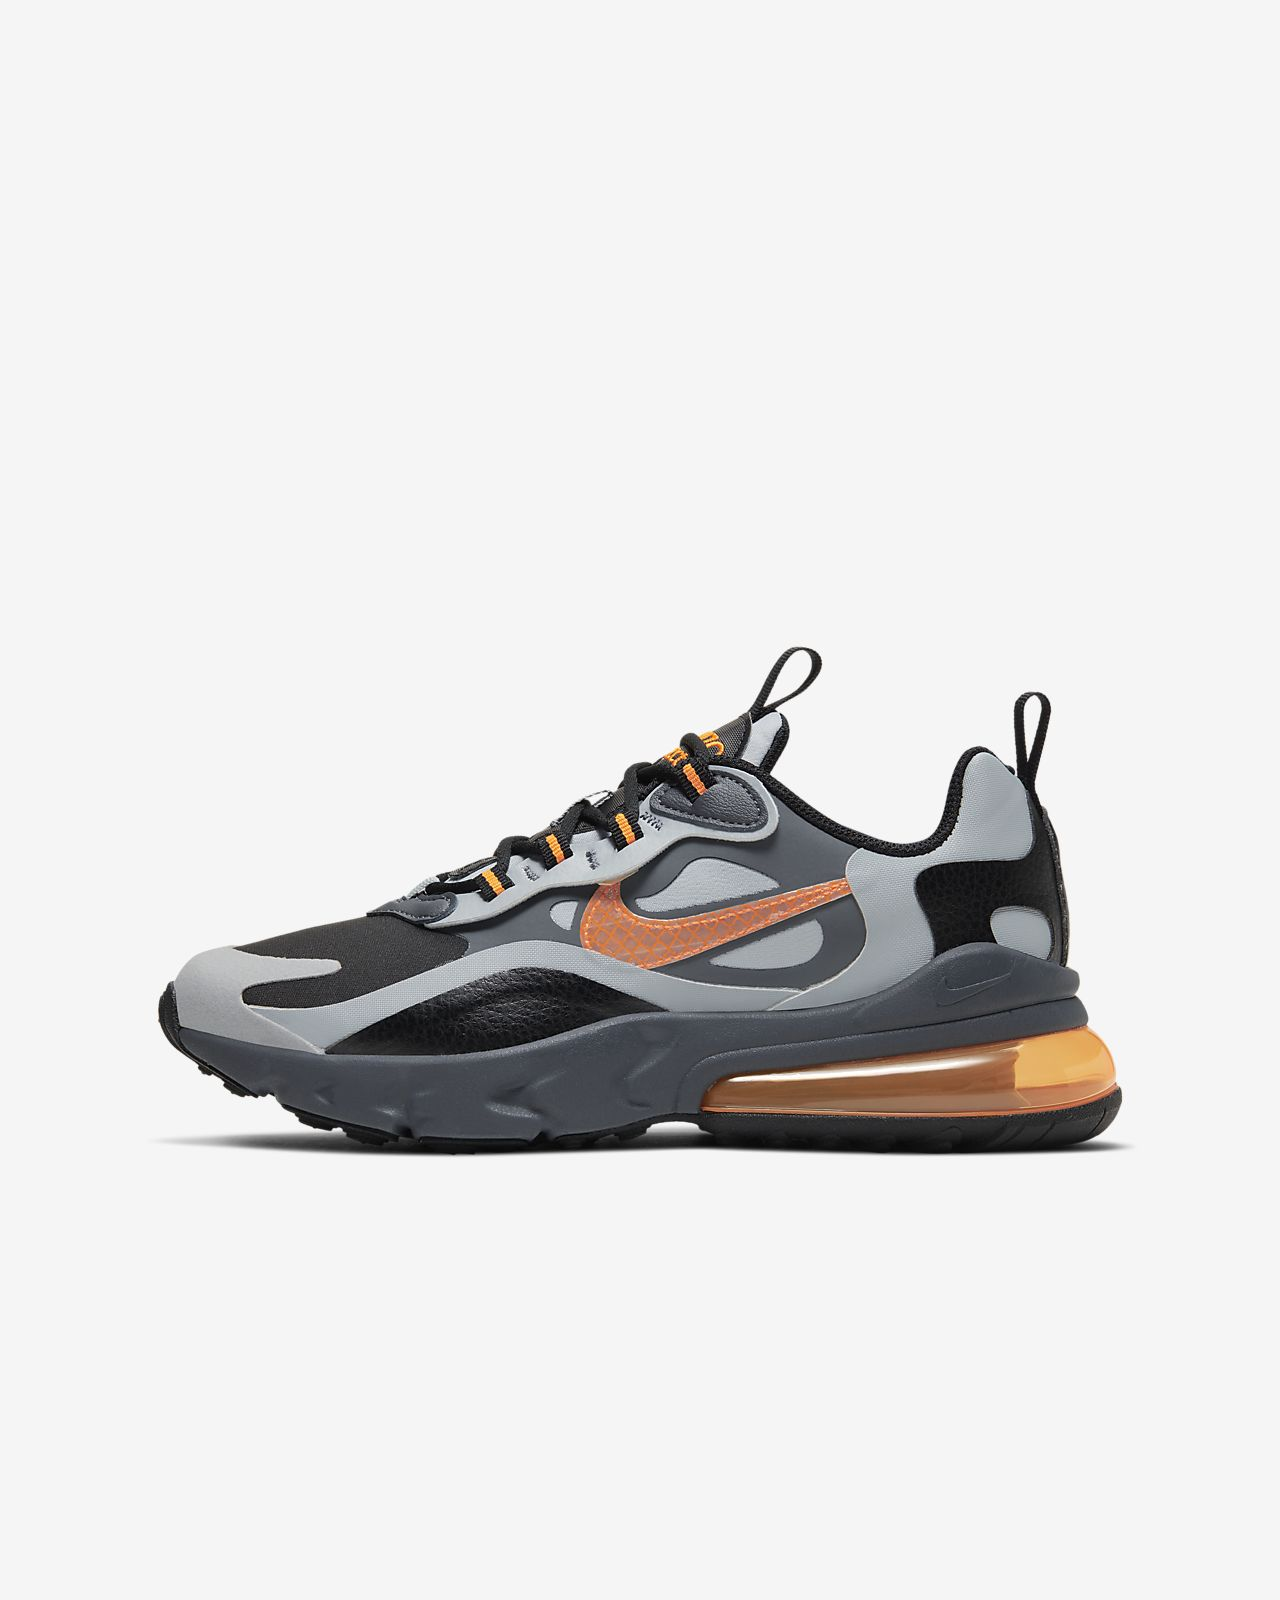 Nike Air Max 270 React Winter sko til store børn